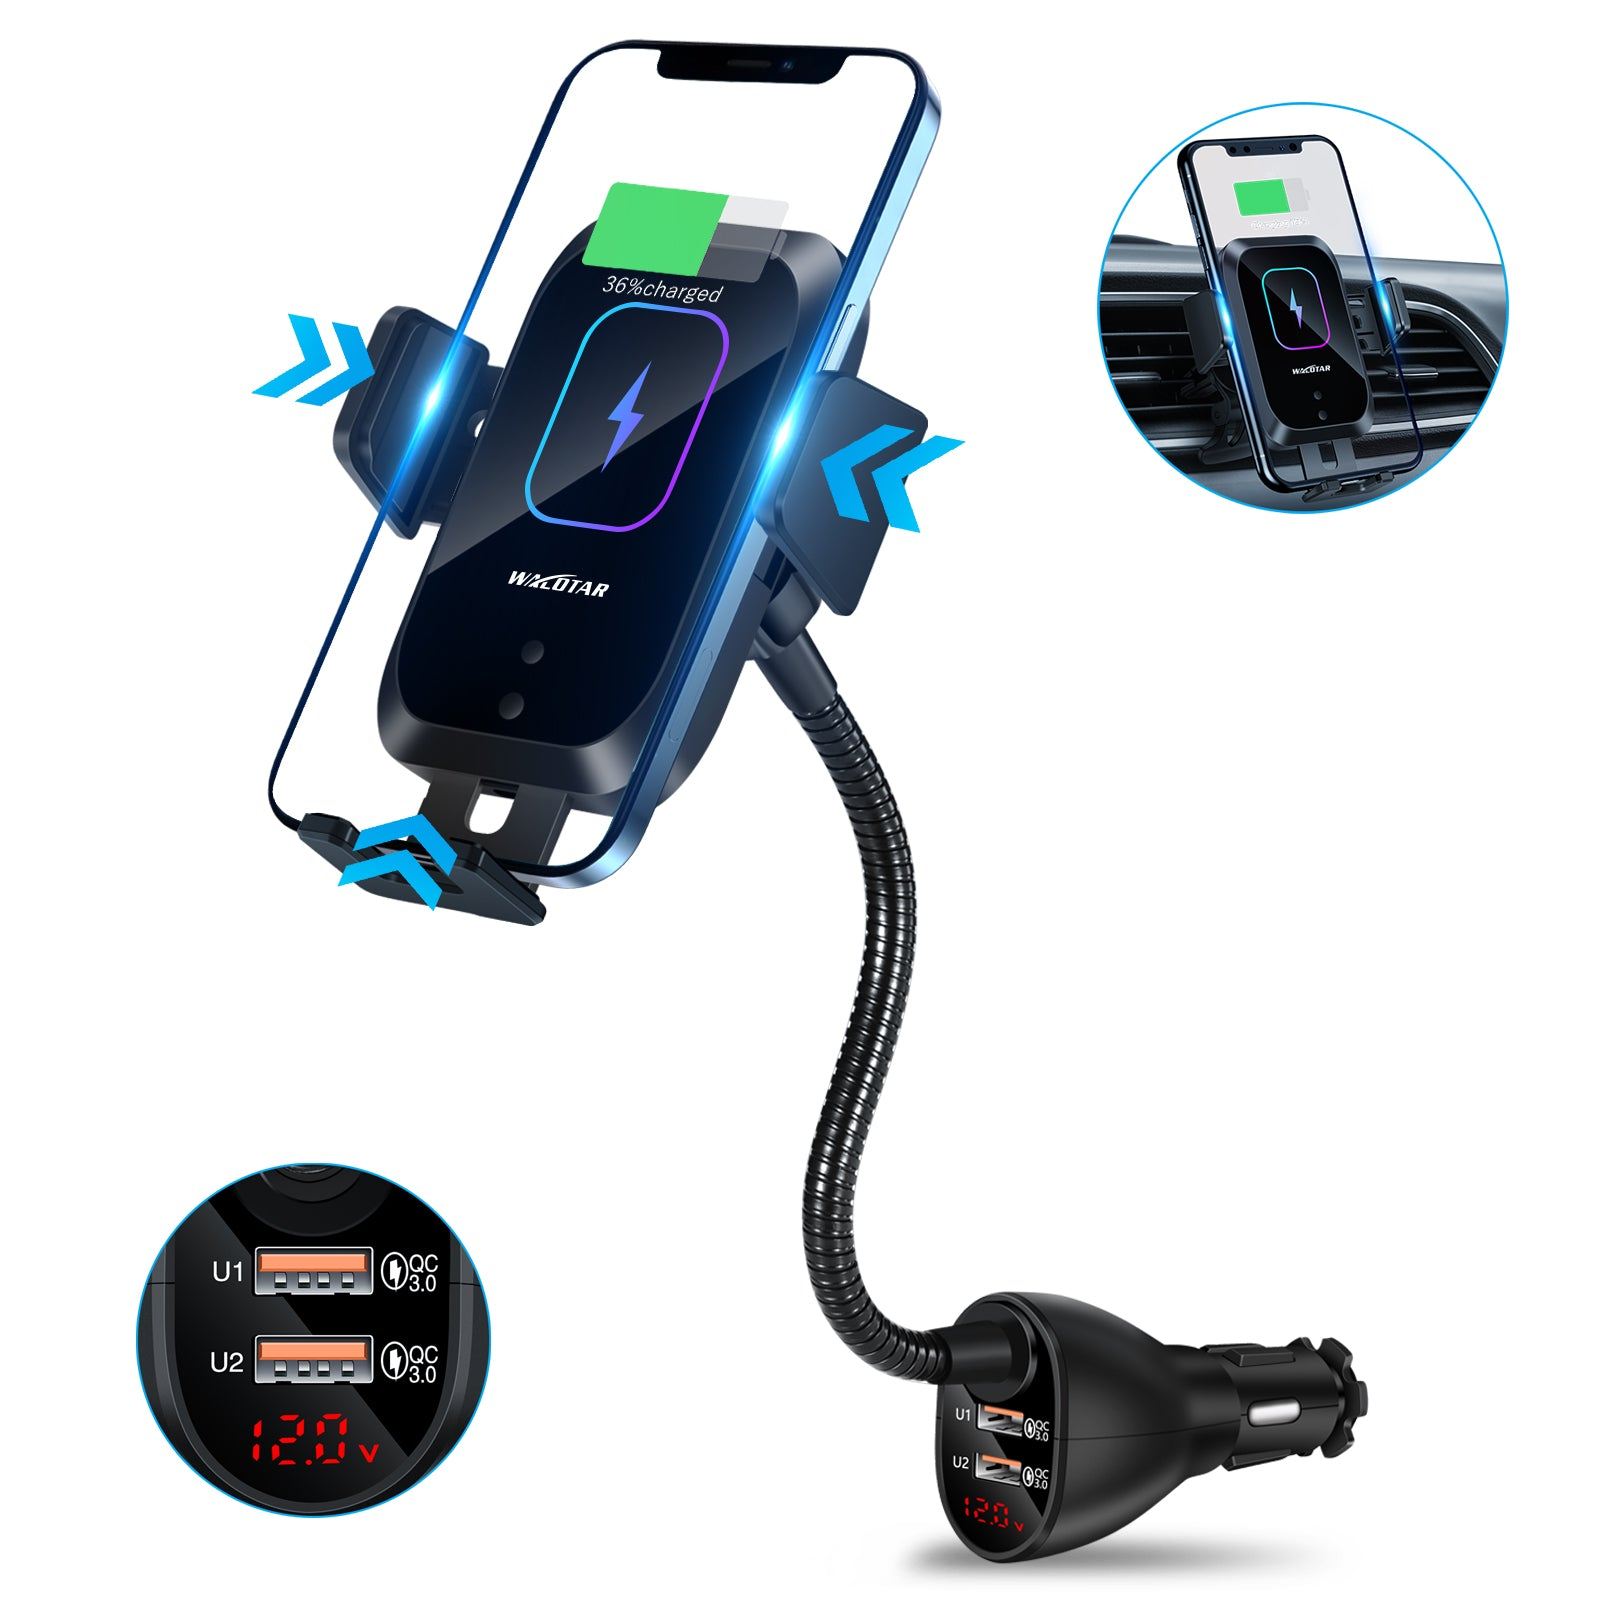 HVDI Wireless Car Charger Mount,Car Cigarette Lighter 15W Qi Fast Charging Auto-Clamping Dual QC 3.0 Port Air Vent Car Charger Phone Holder,for iPhone 12 Pro Max/11 Pro Max/XR/X/8,Samsung S20/S10/9/8